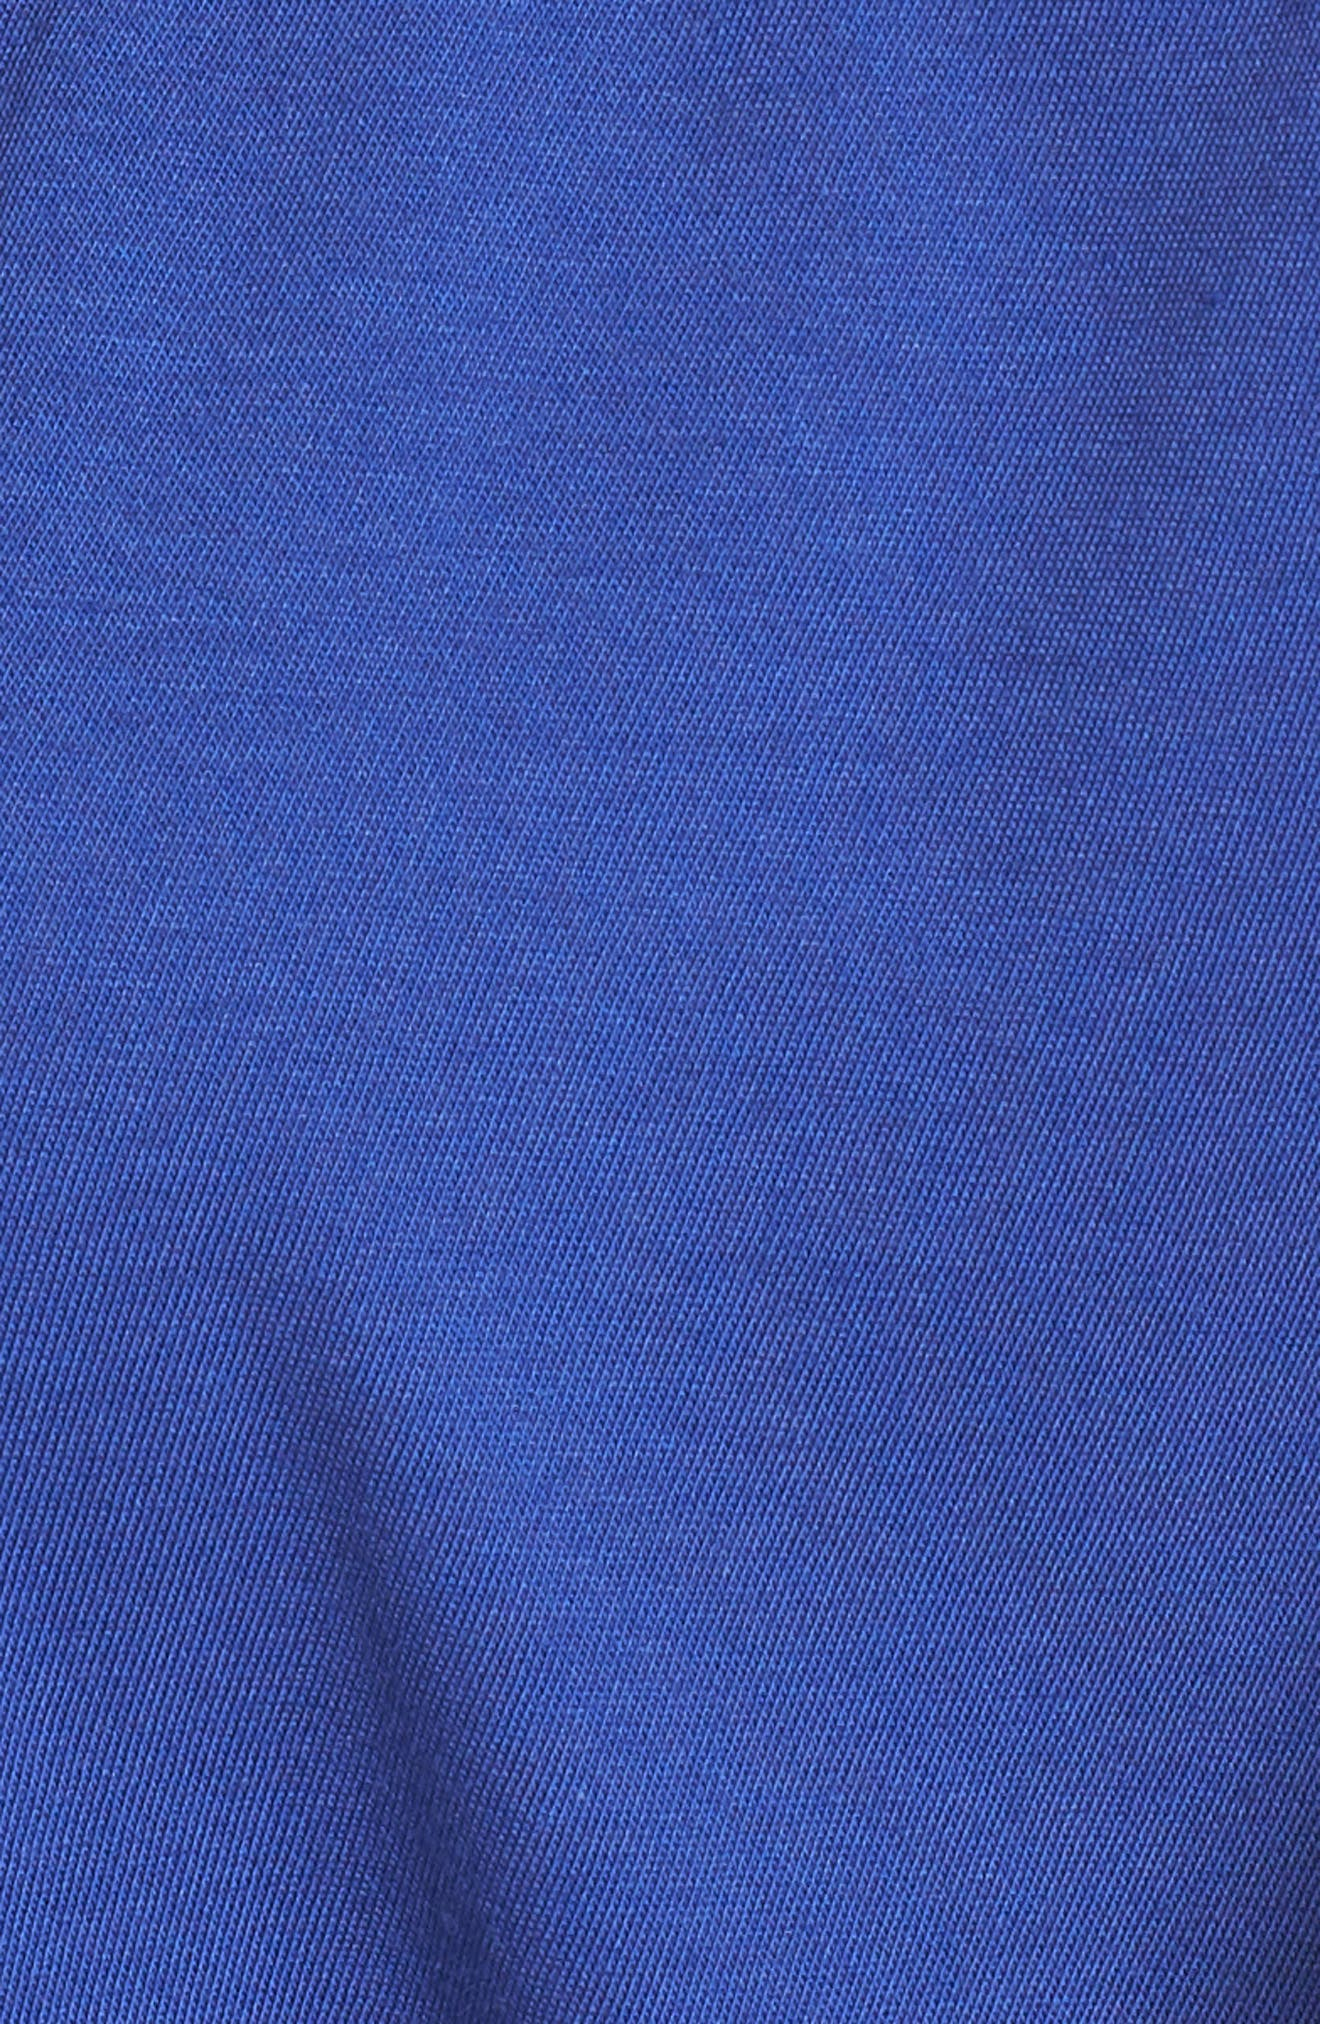 Sweetest Thing Robe,                             Alternate thumbnail 6, color,                             Blue